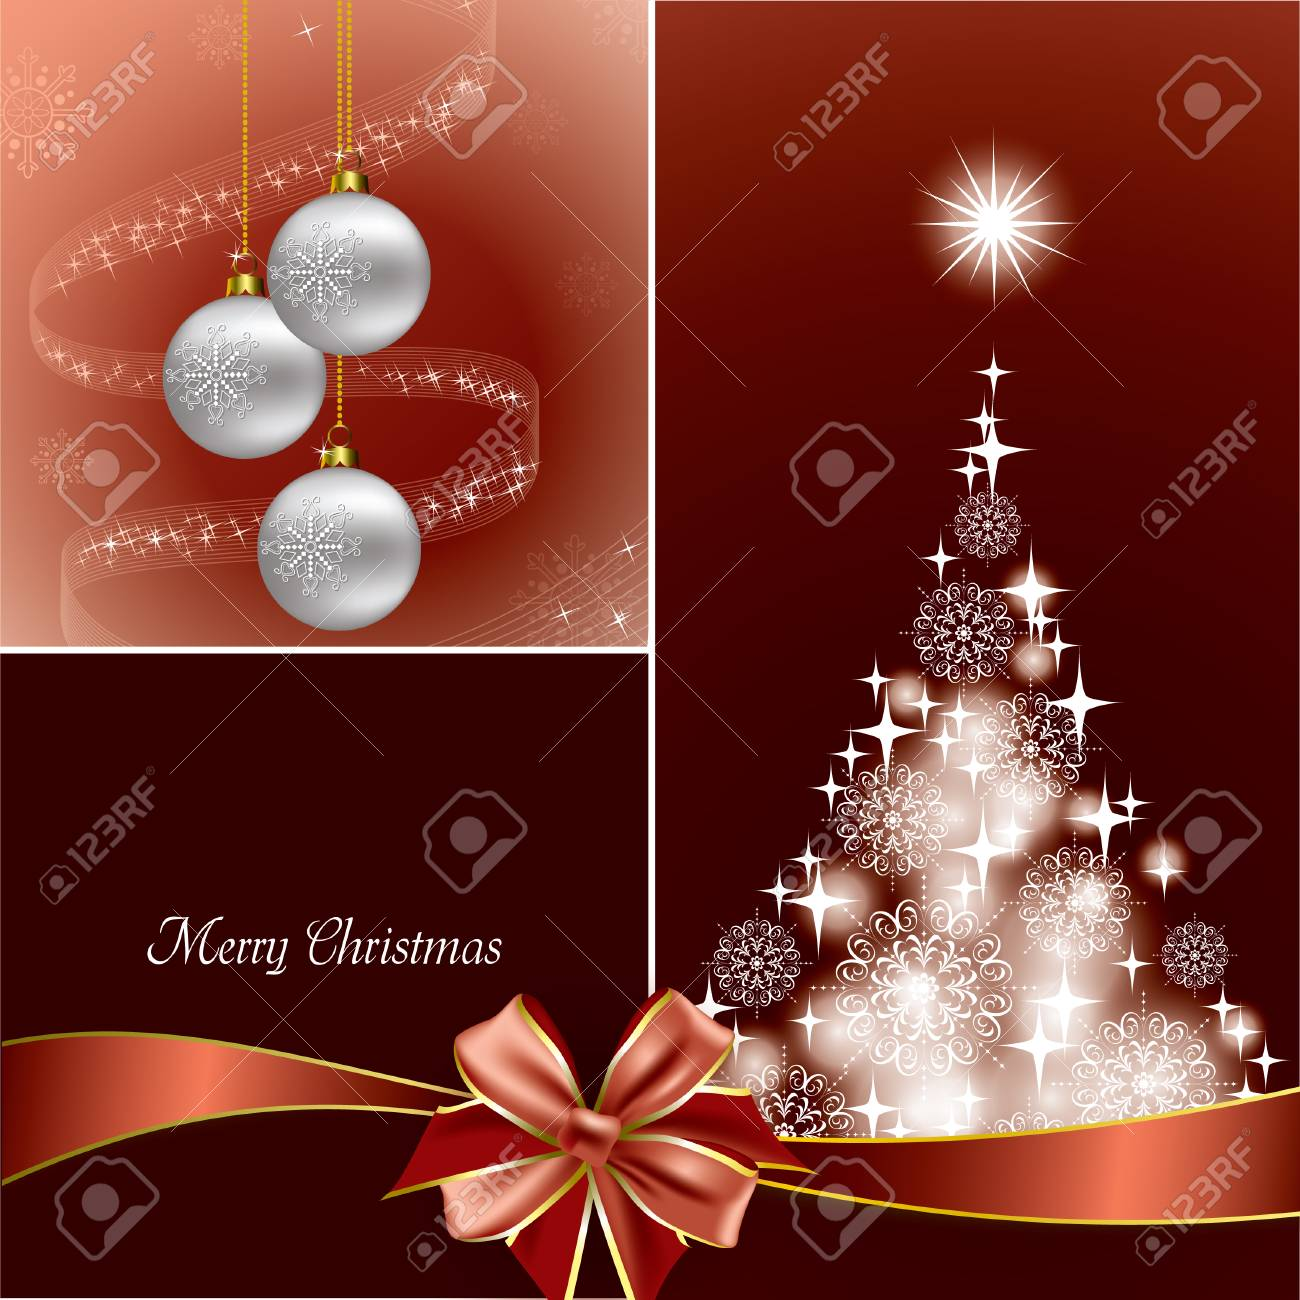 Christmas Background Stock Vector - 23549846